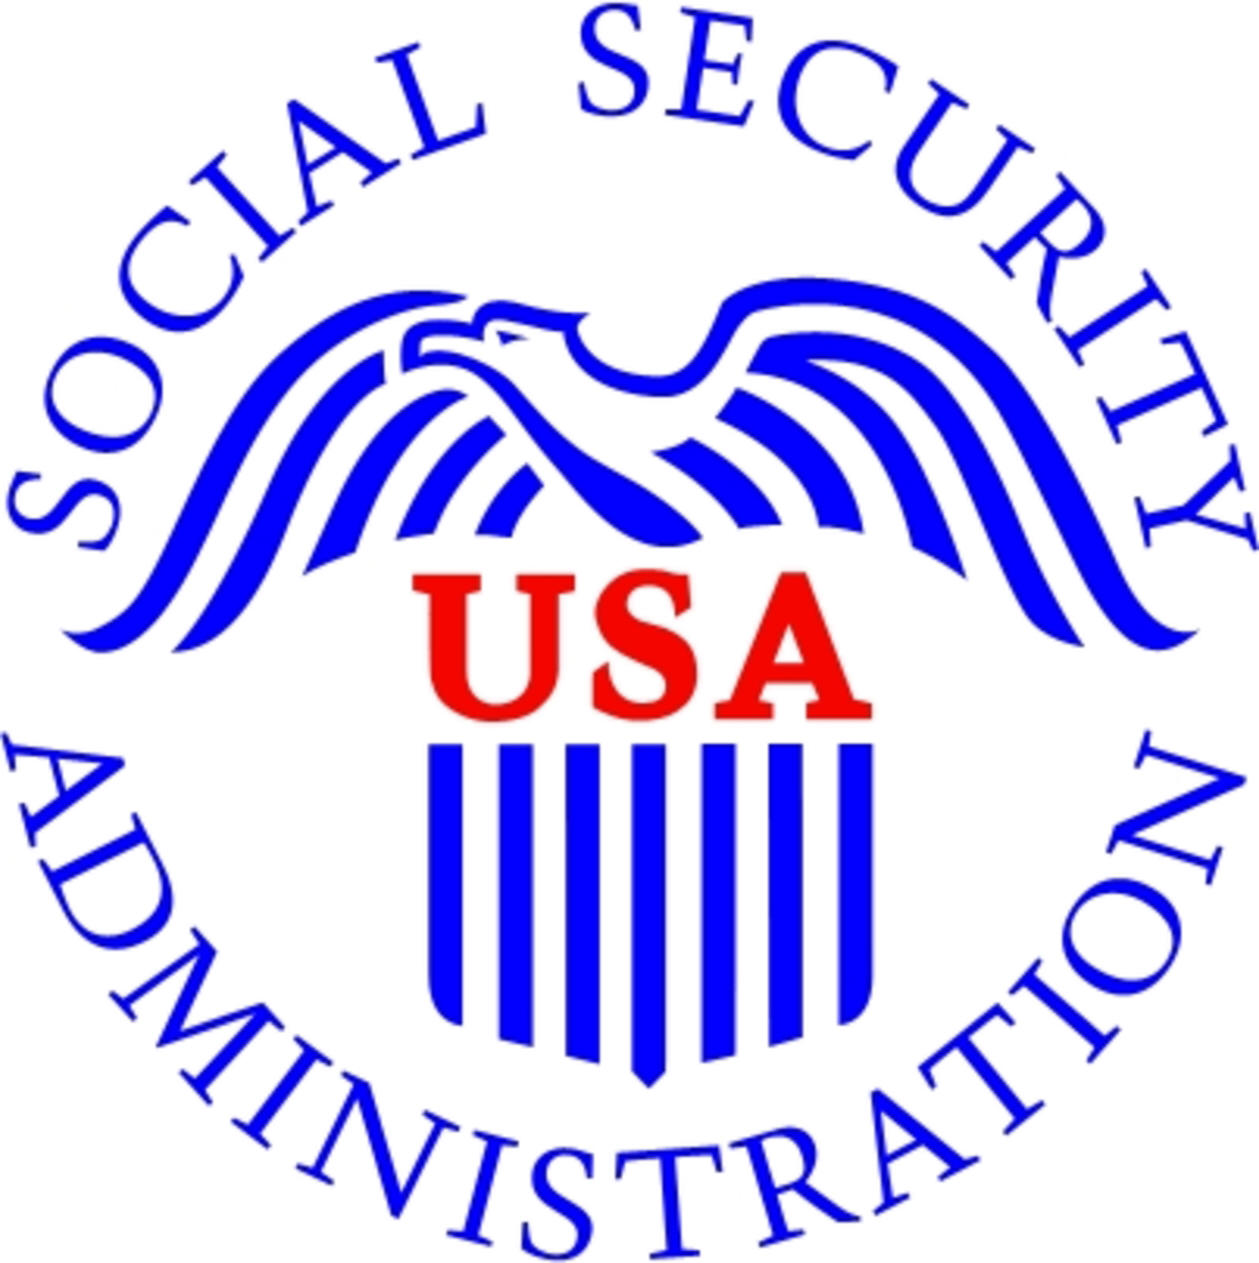 Changes to Social Security Will Smooth Out the Process for Disability Benefits Recipients